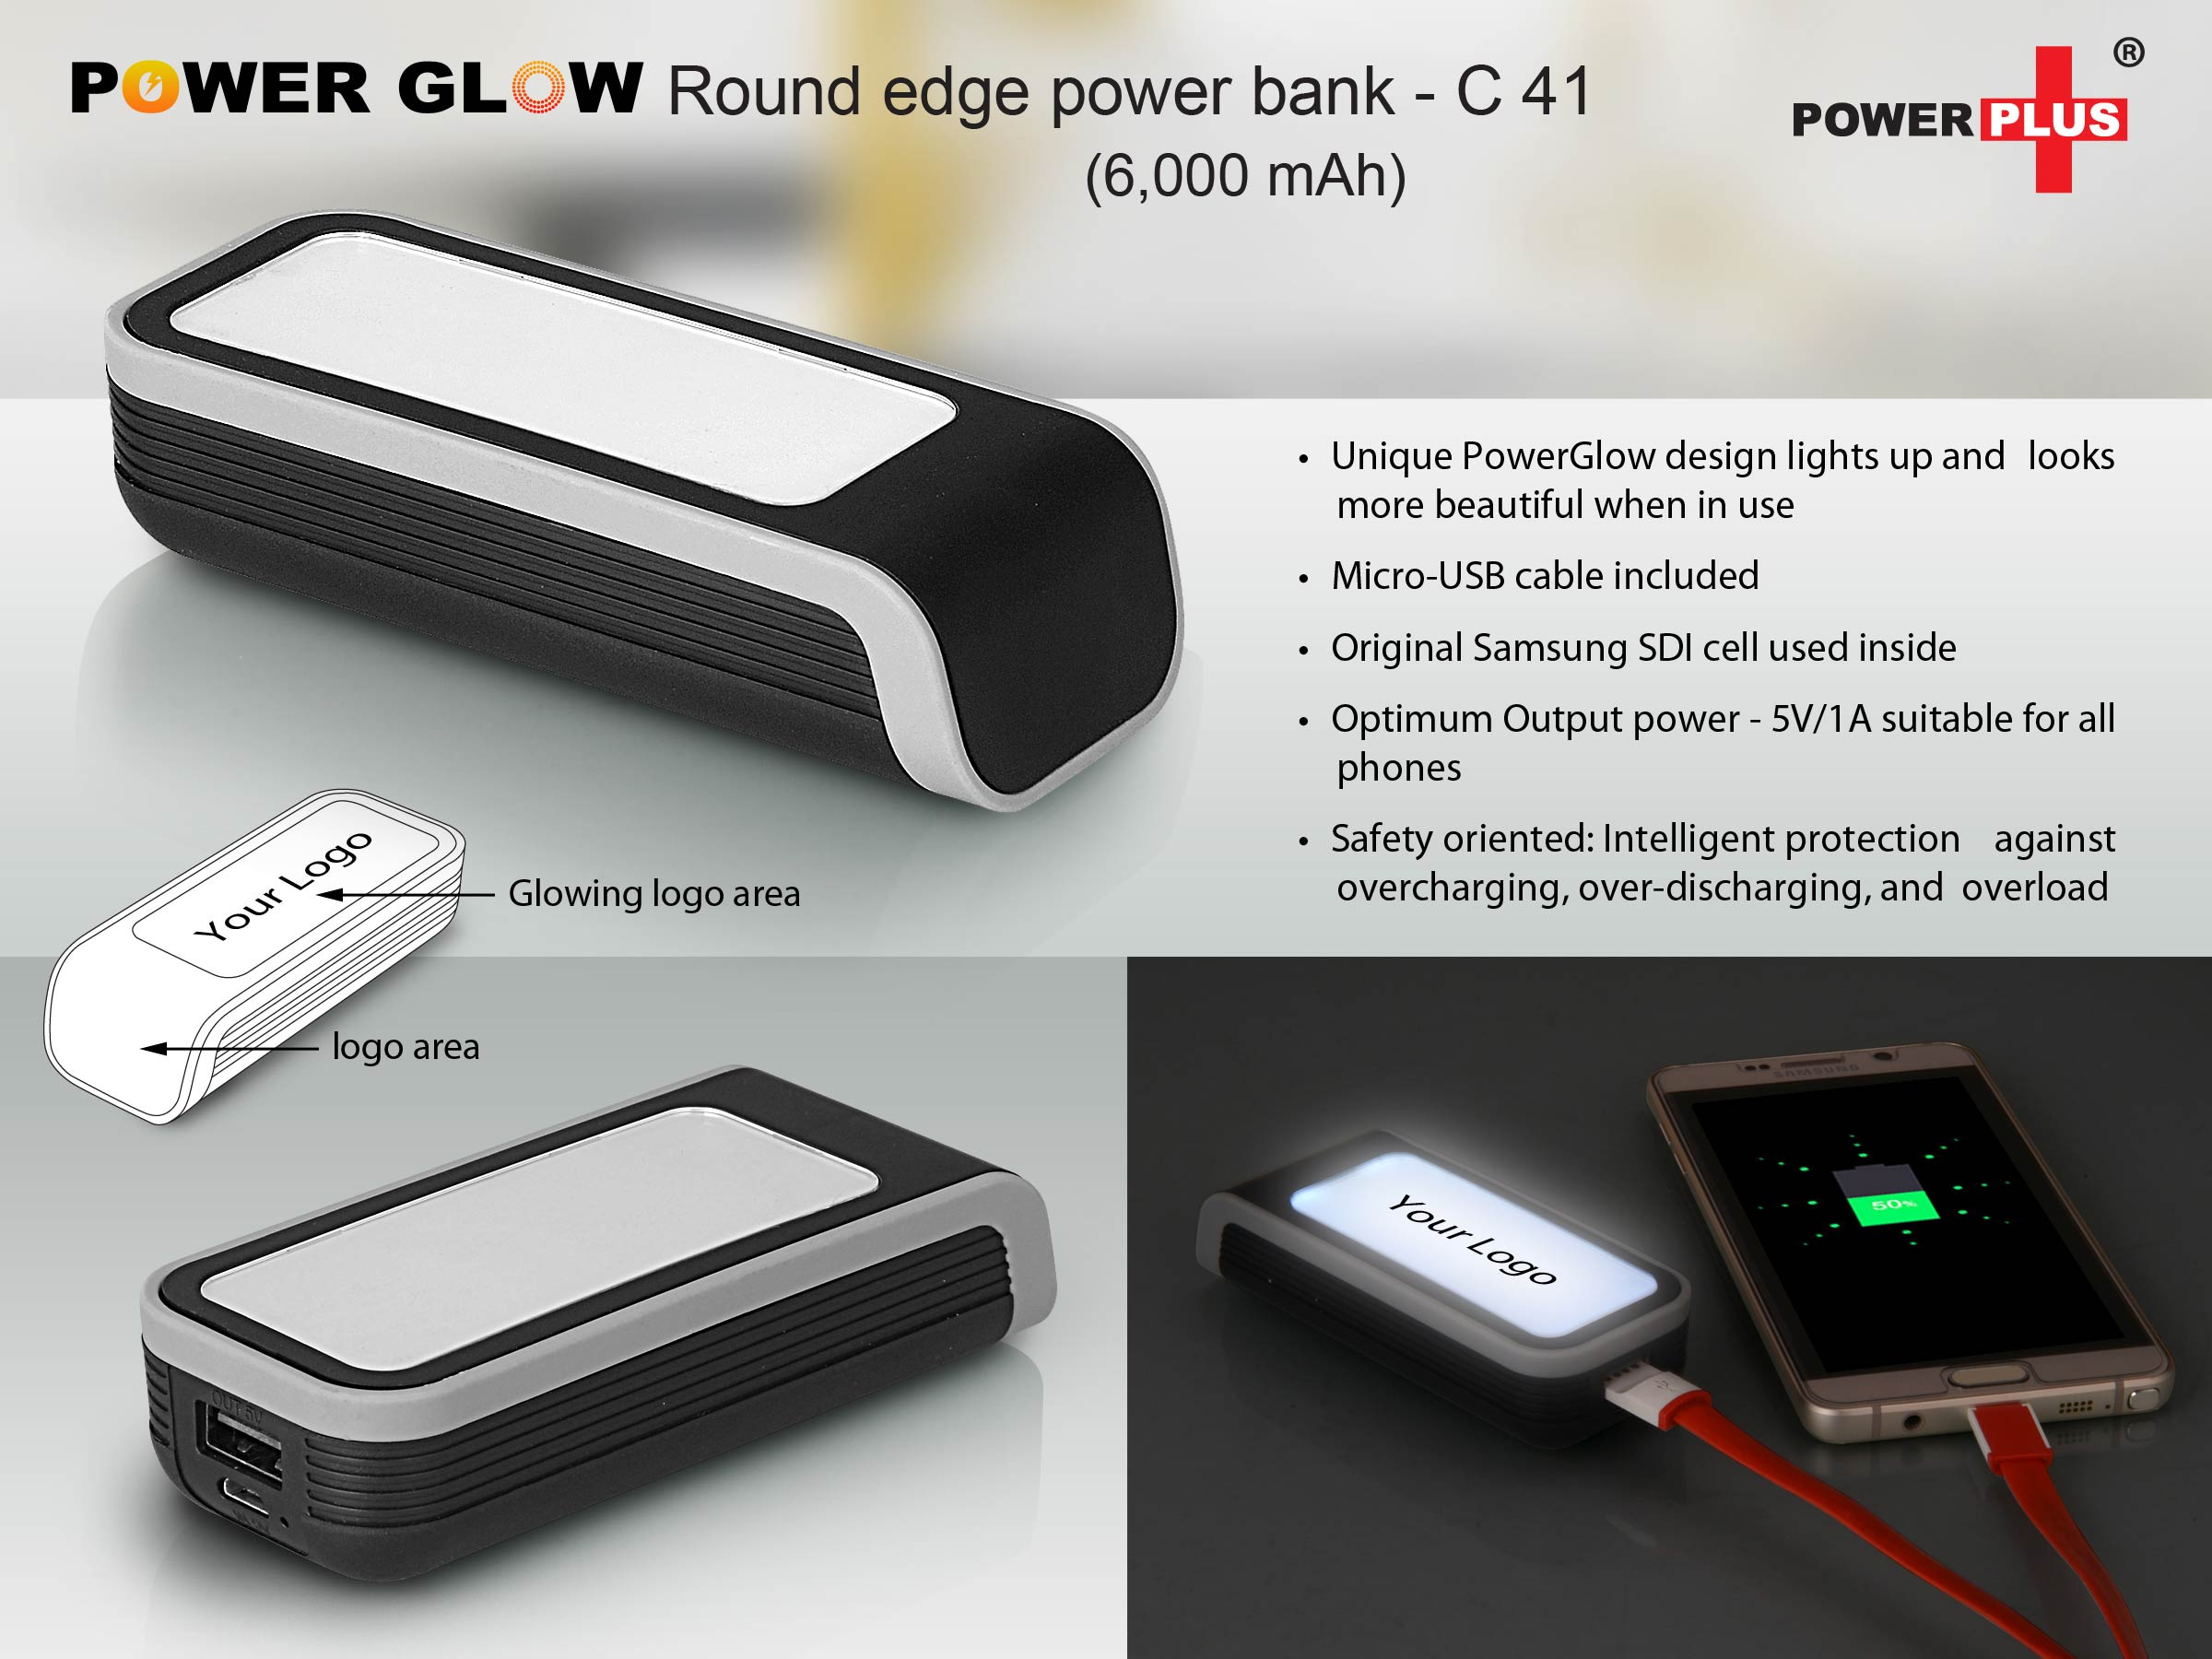 C41 - POWERGLOW ROUND EDGE POWER BANK (6,000 MAH)